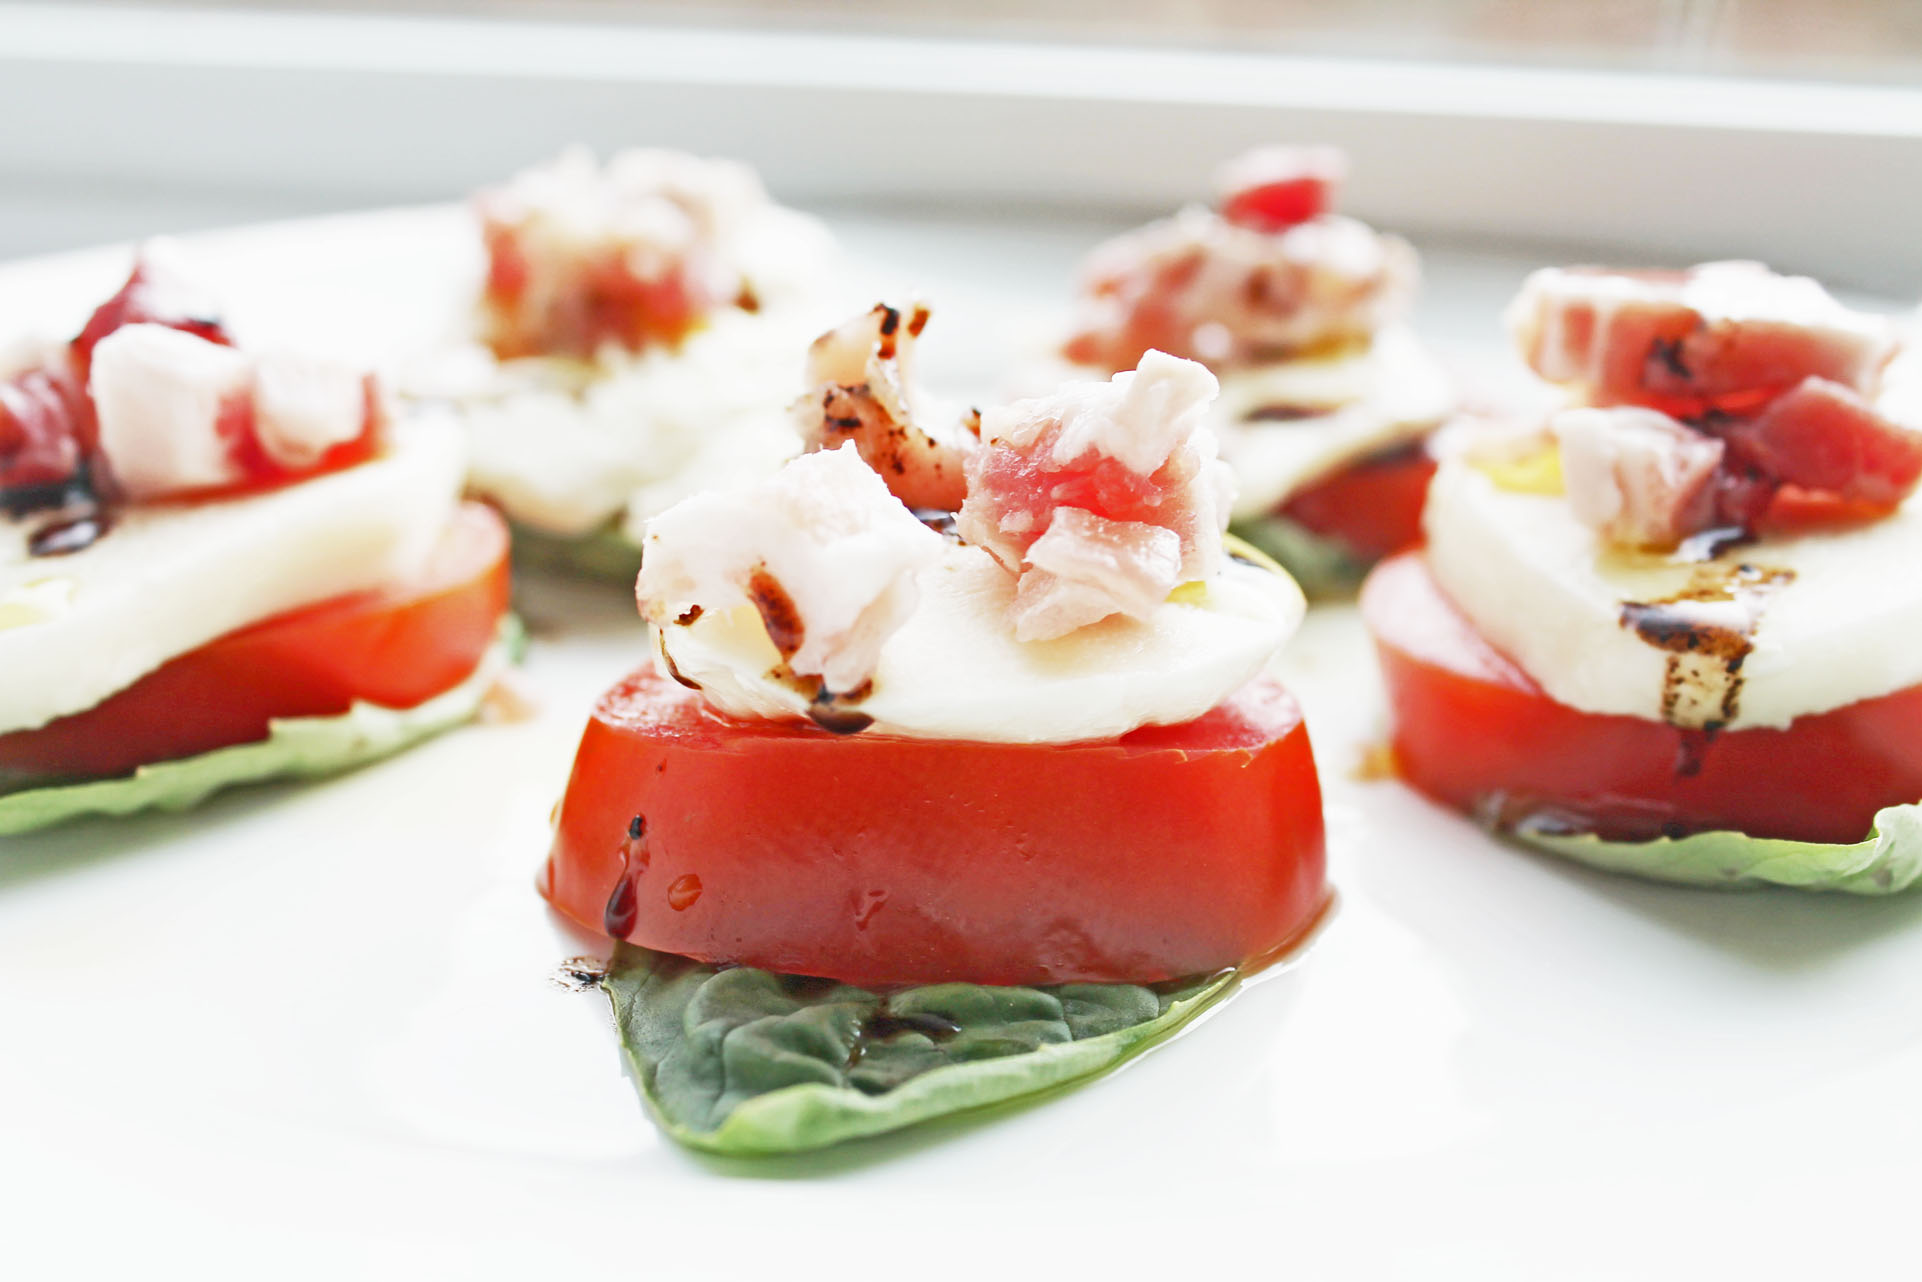 EASY HEALTHY CAPRESE BITES WITH PROSCIUTTO